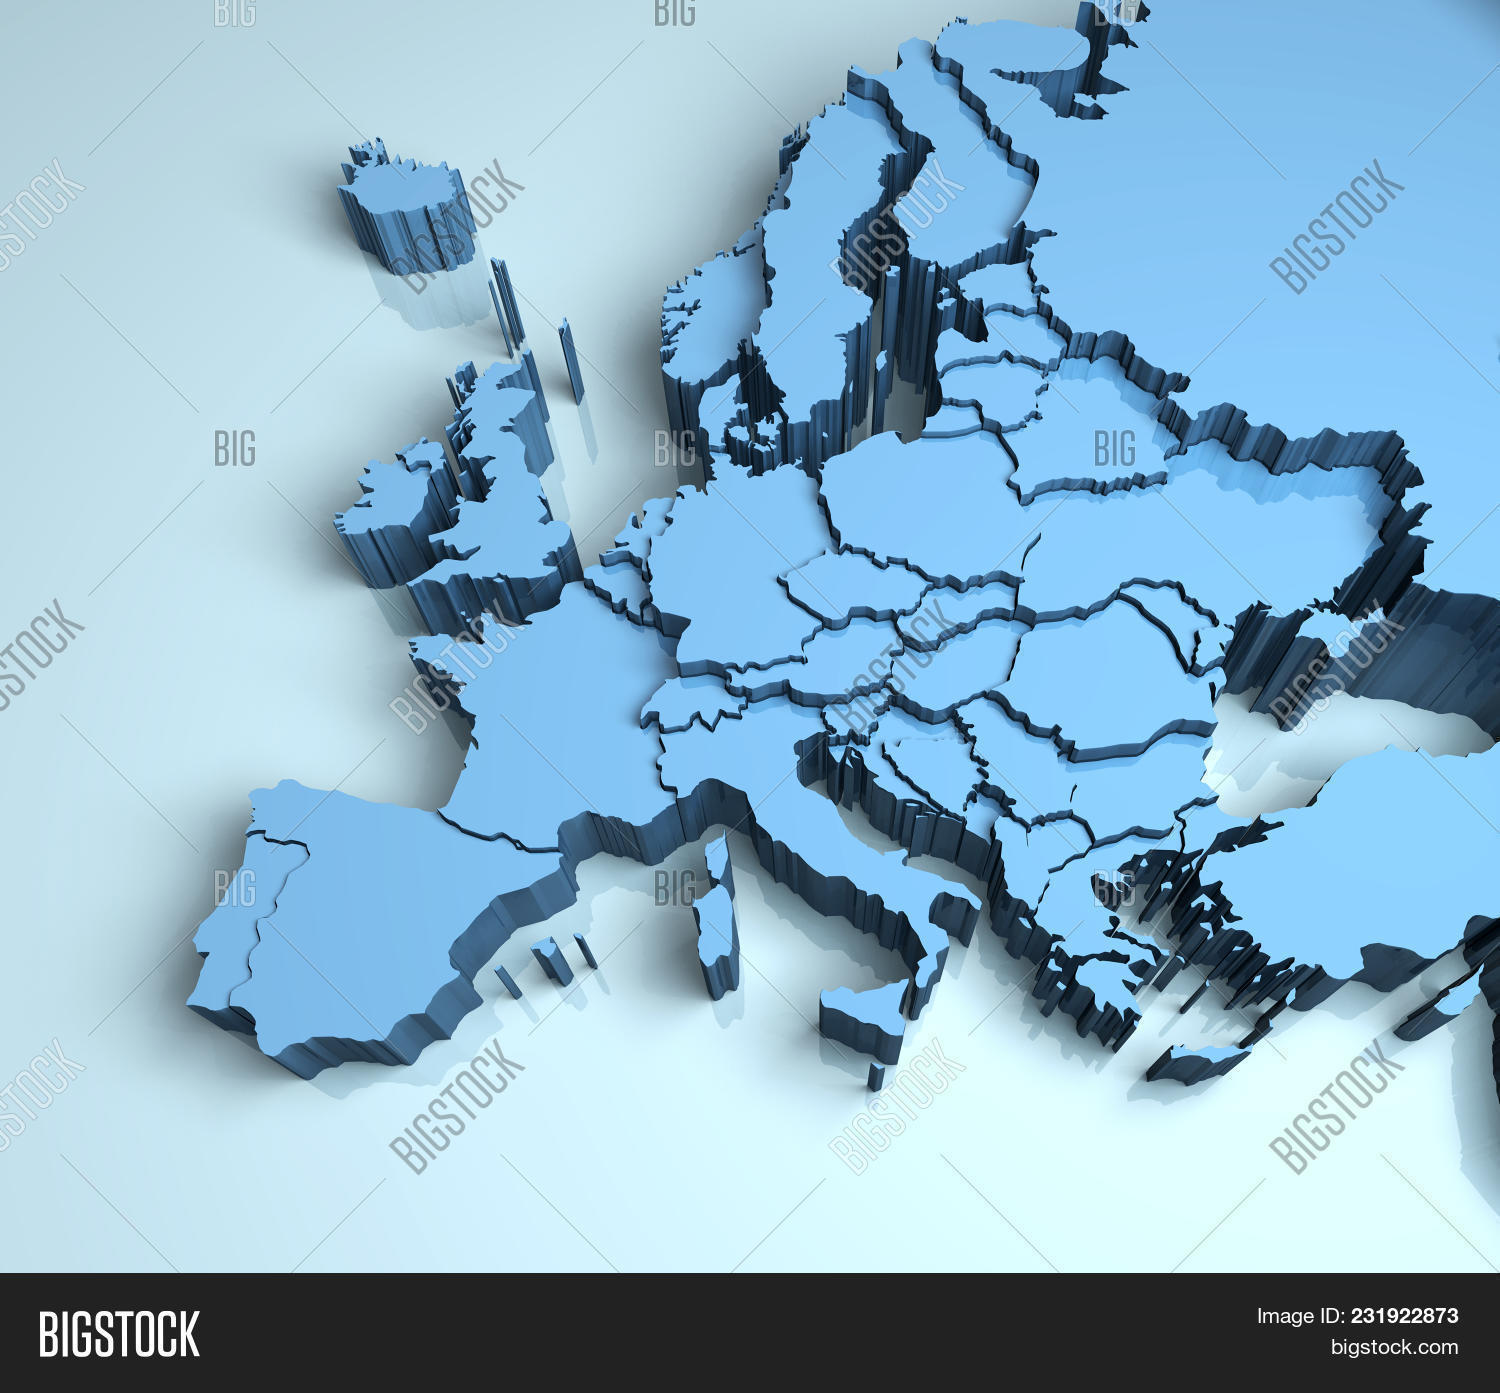 Europe 3d Map Image Image & Photo (Free Trial) | Bigstock on derry map, british isles europe map, geography europe map, map europe map, western europe map, lancaster europe map, region europe map, central europe map, the orient map, southeastern europe map, population density europe map, cork map, the continent map, waterford map, southern europe map, northern europe map, sligo map, the far east map, continental europe map, eastern europe political map,